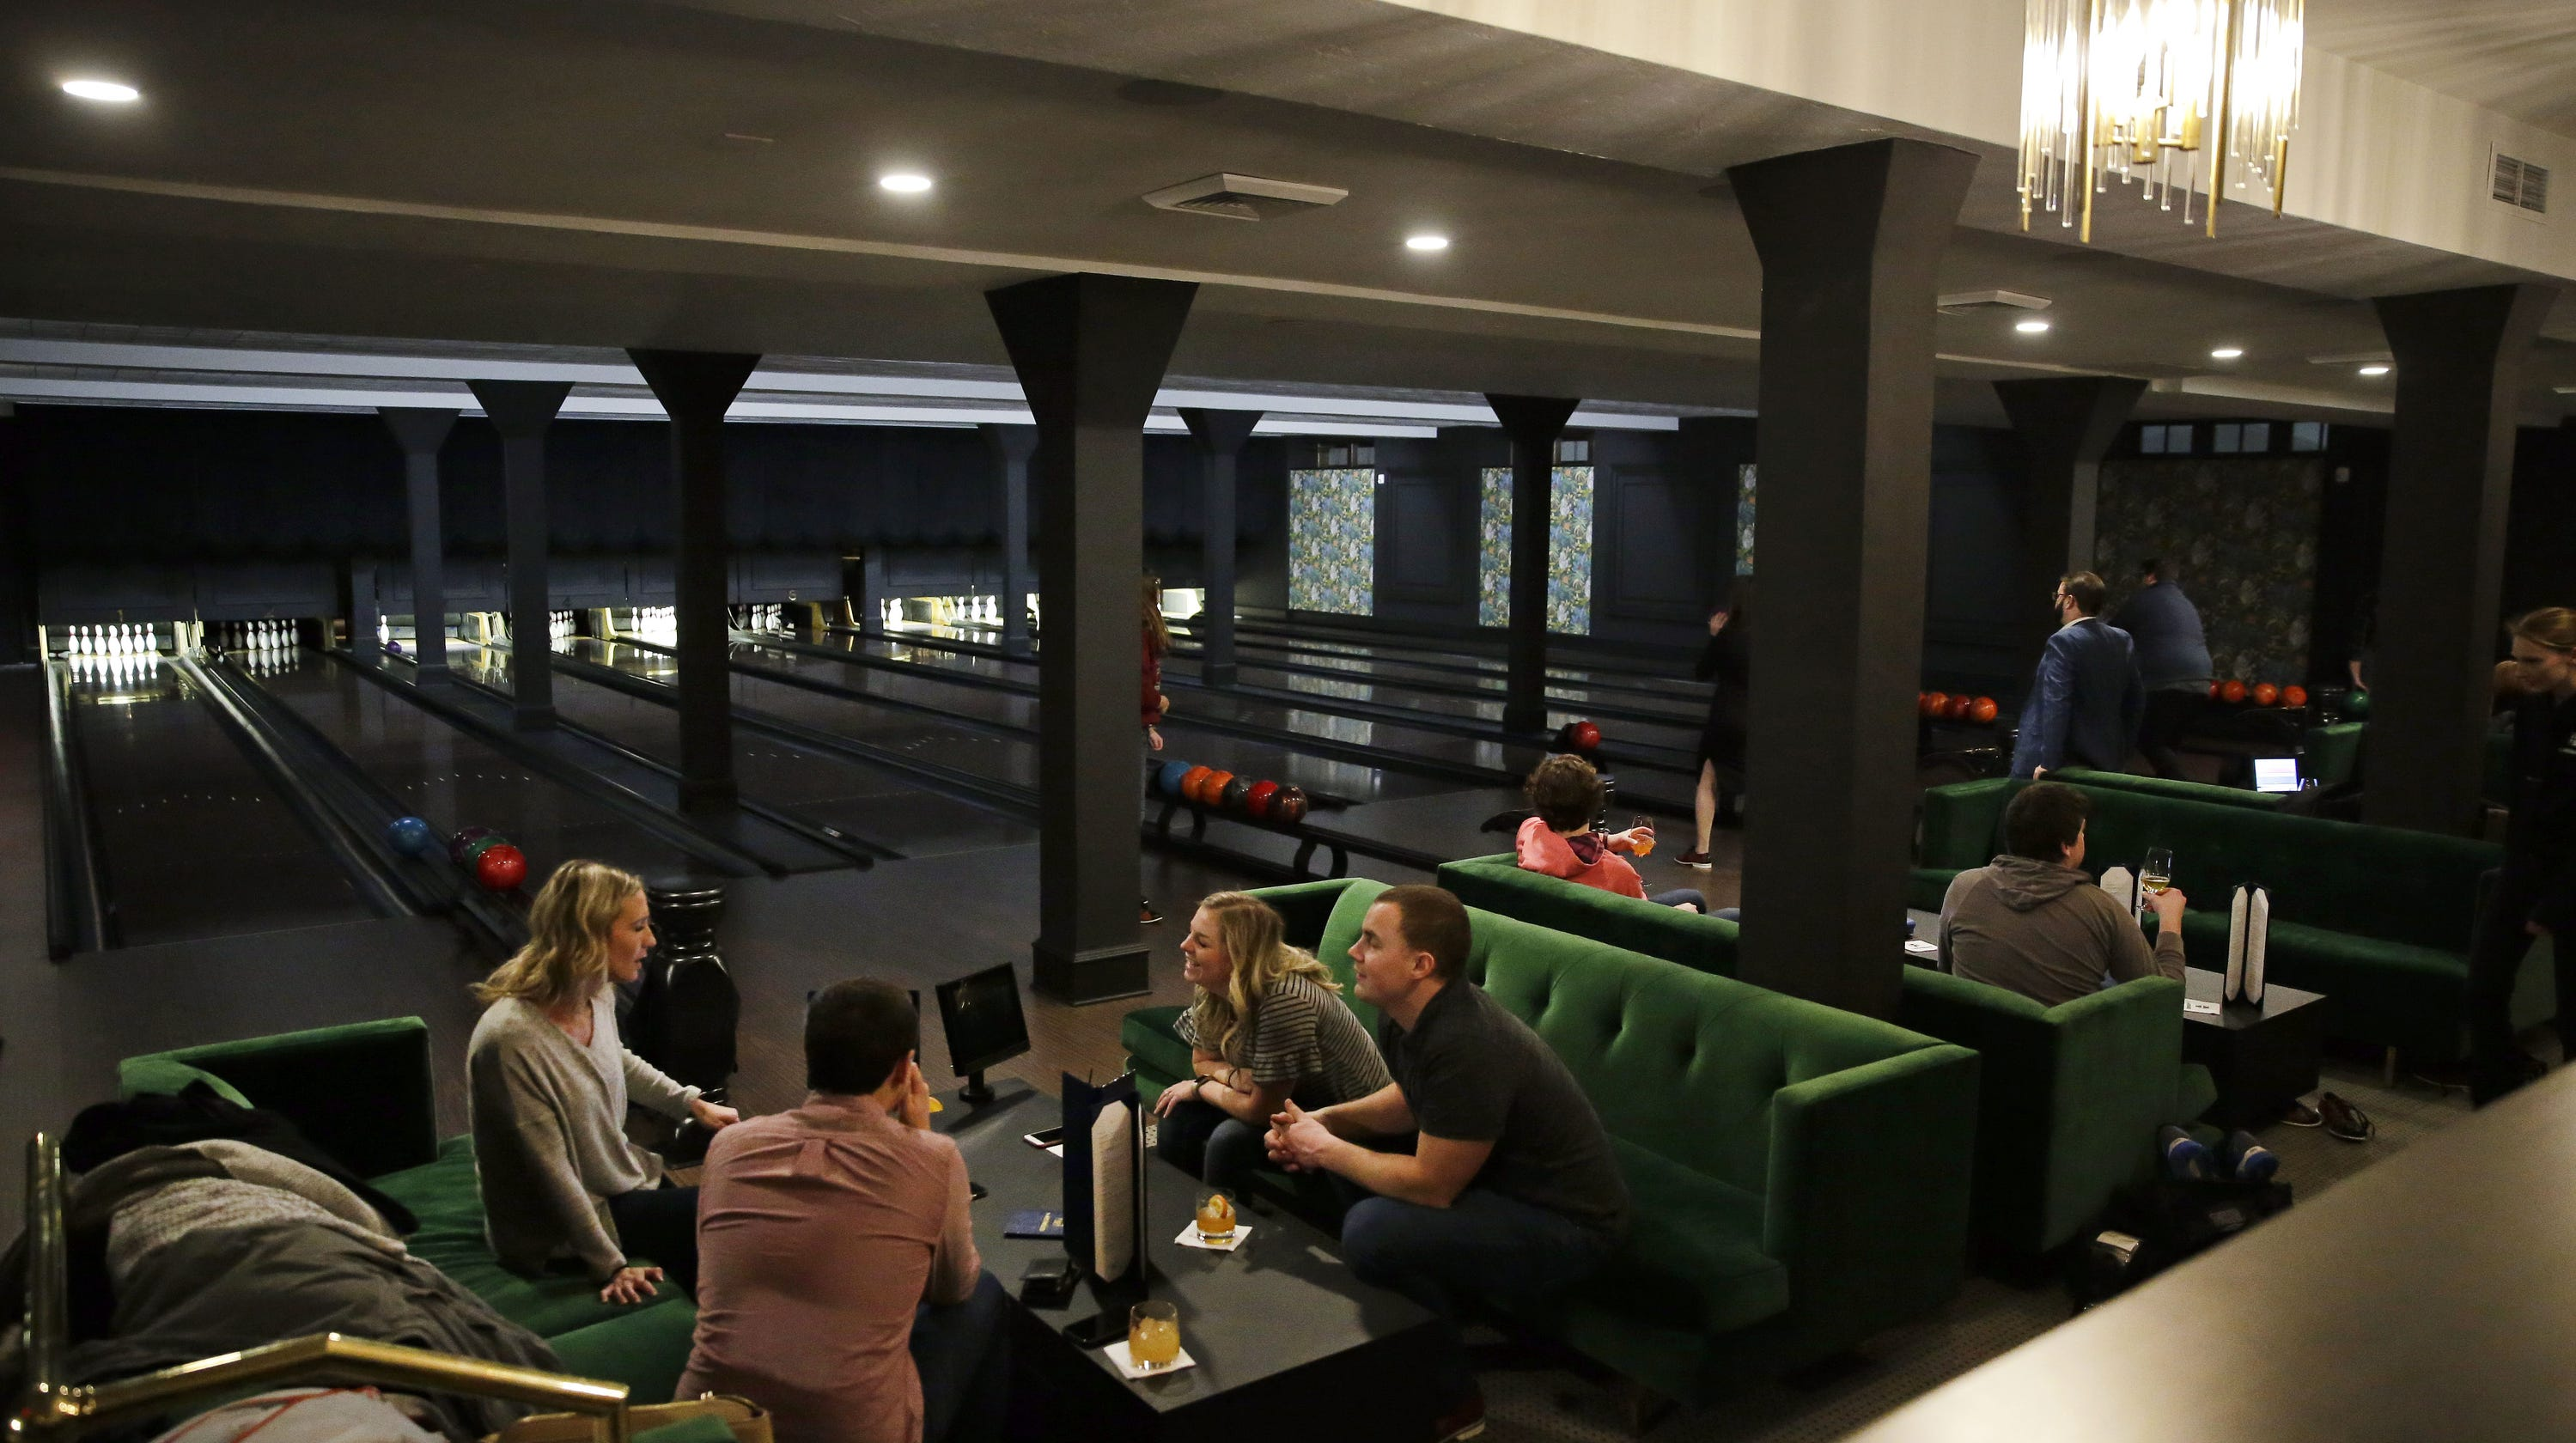 The Howard opens its bowling alley - The Lanes